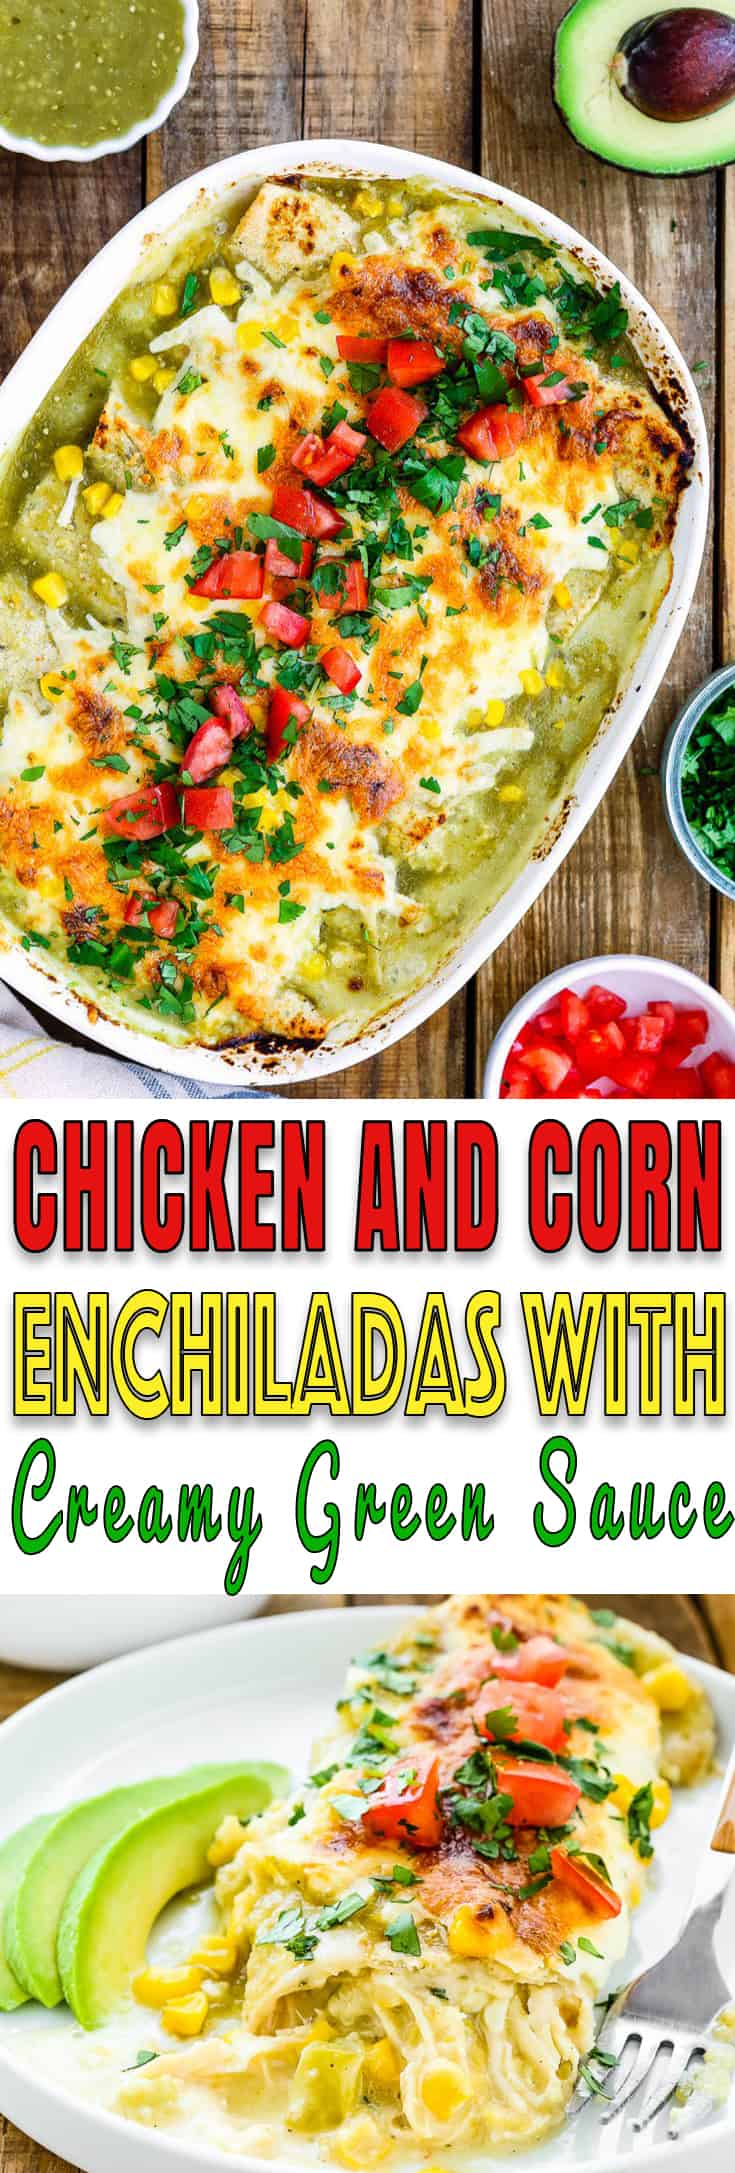 These Chicken and Corn Enchiladas with Creamy Green Sauce are weeknight meal perfection. It's cheesy, it's slightly spicy, it's sensationally delicious. http://mommyshomecooking.com